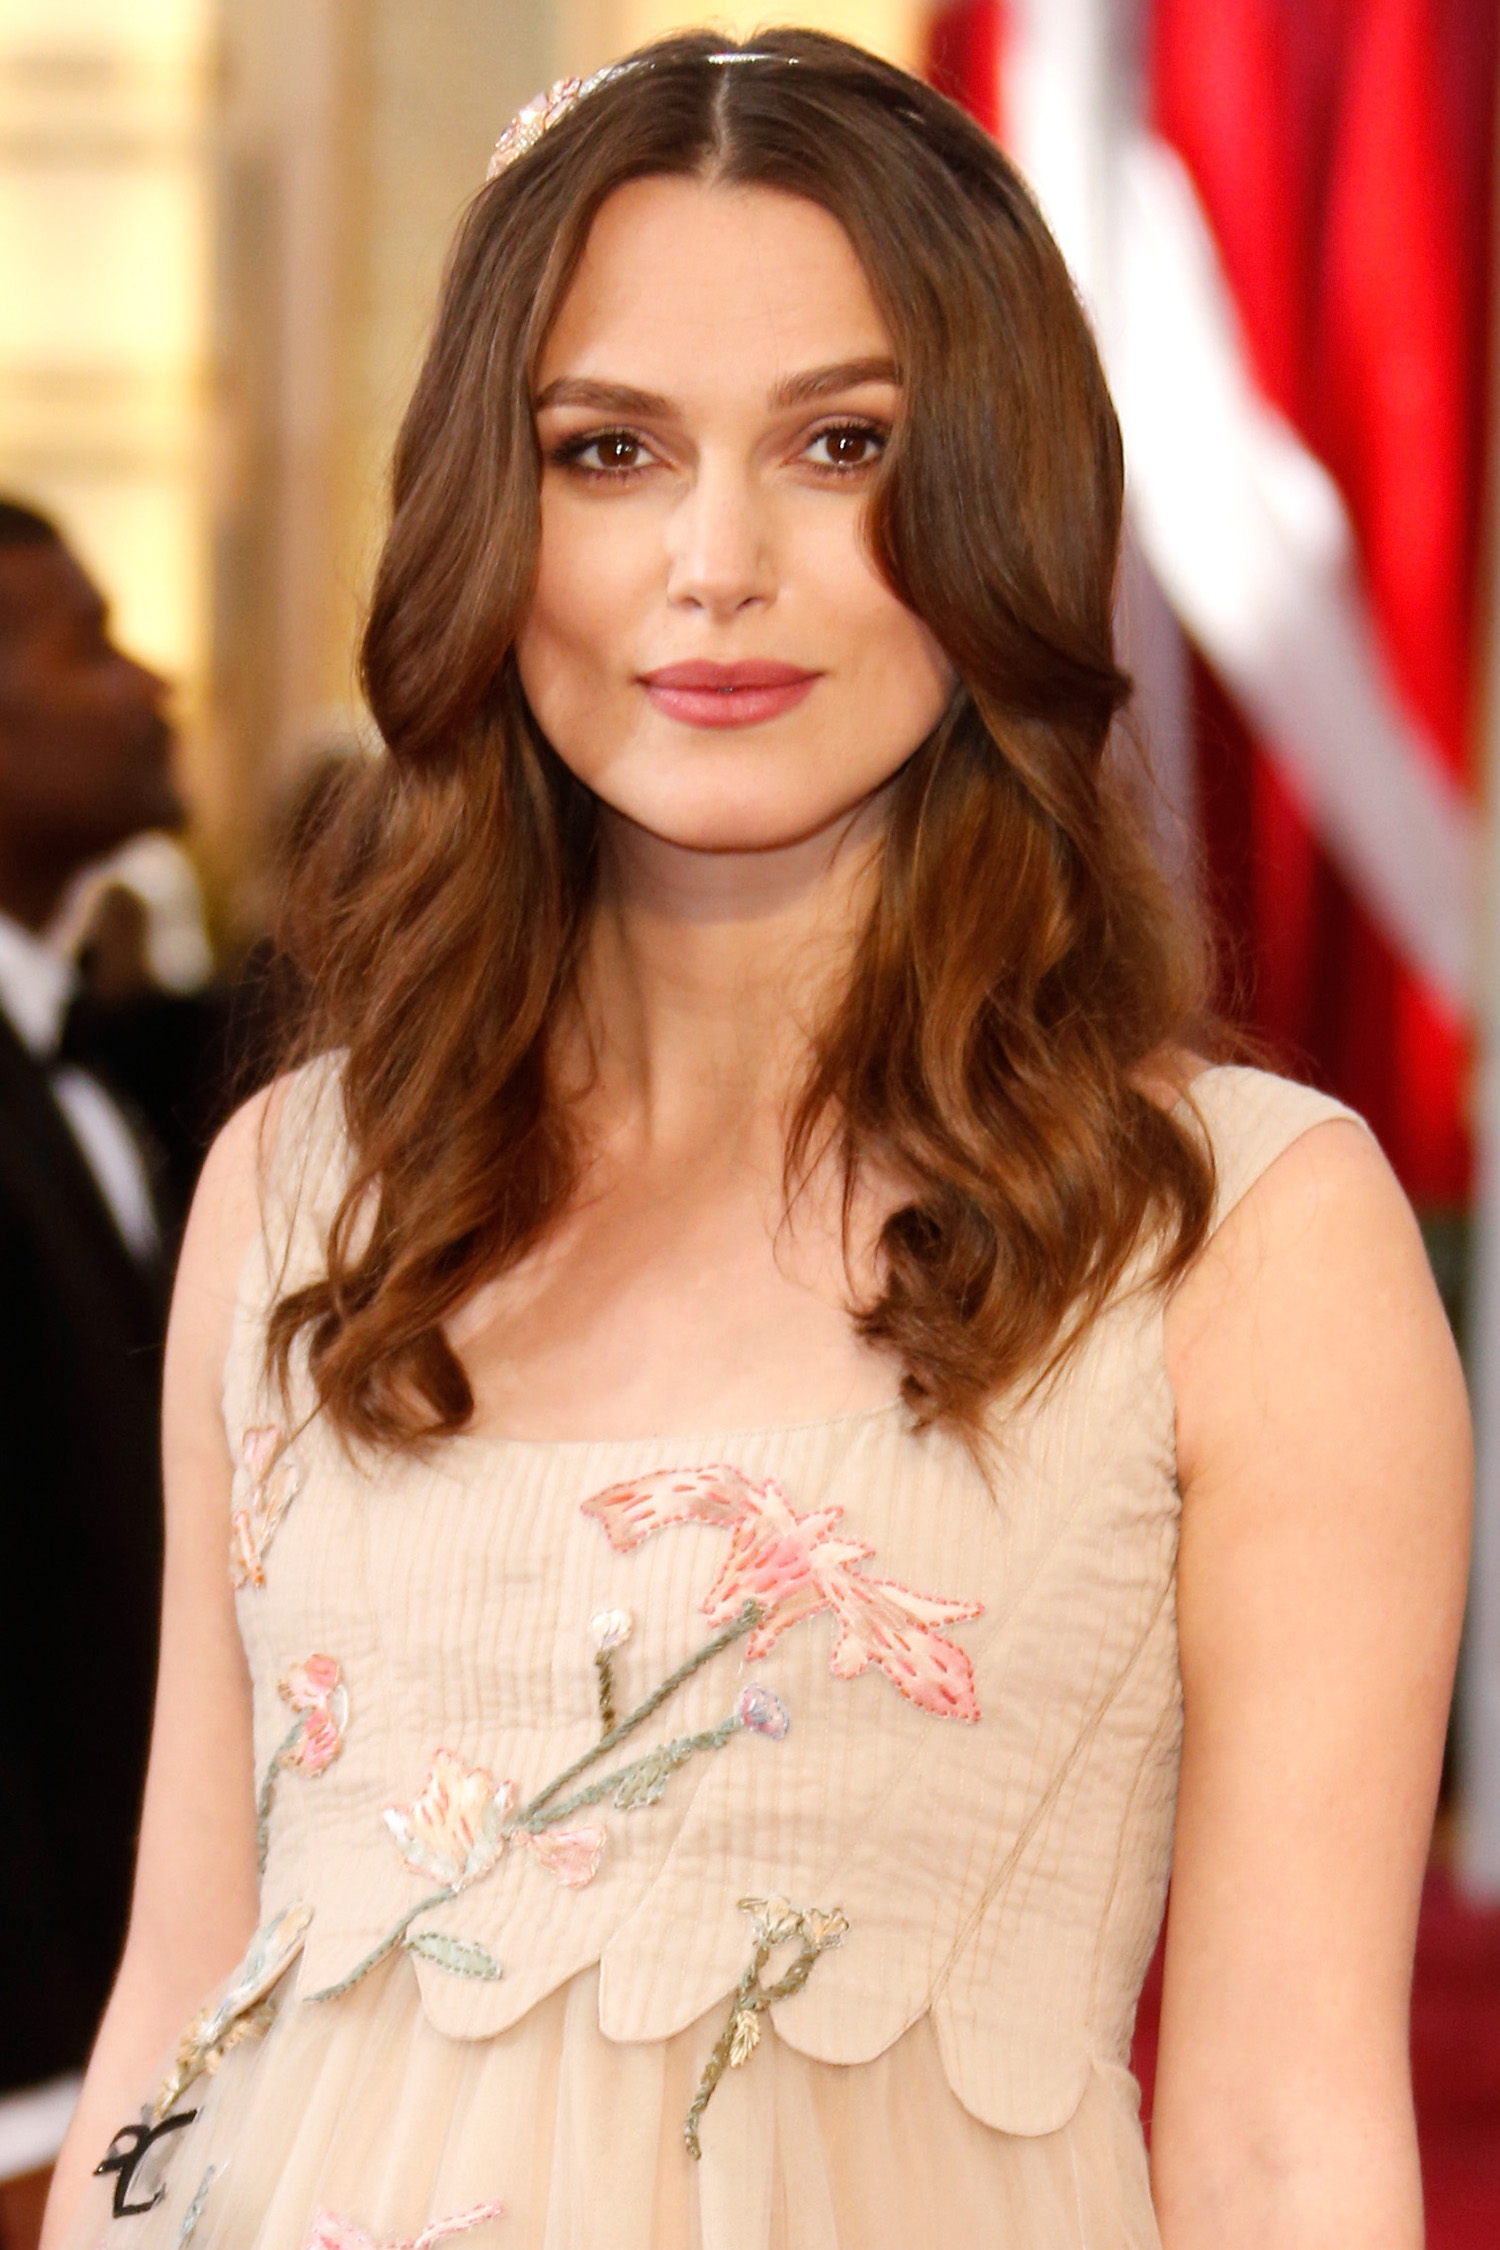 Oscars 2015 Best Beauty Looks - Celebrity Hair and Makeup ... Keira Knightley